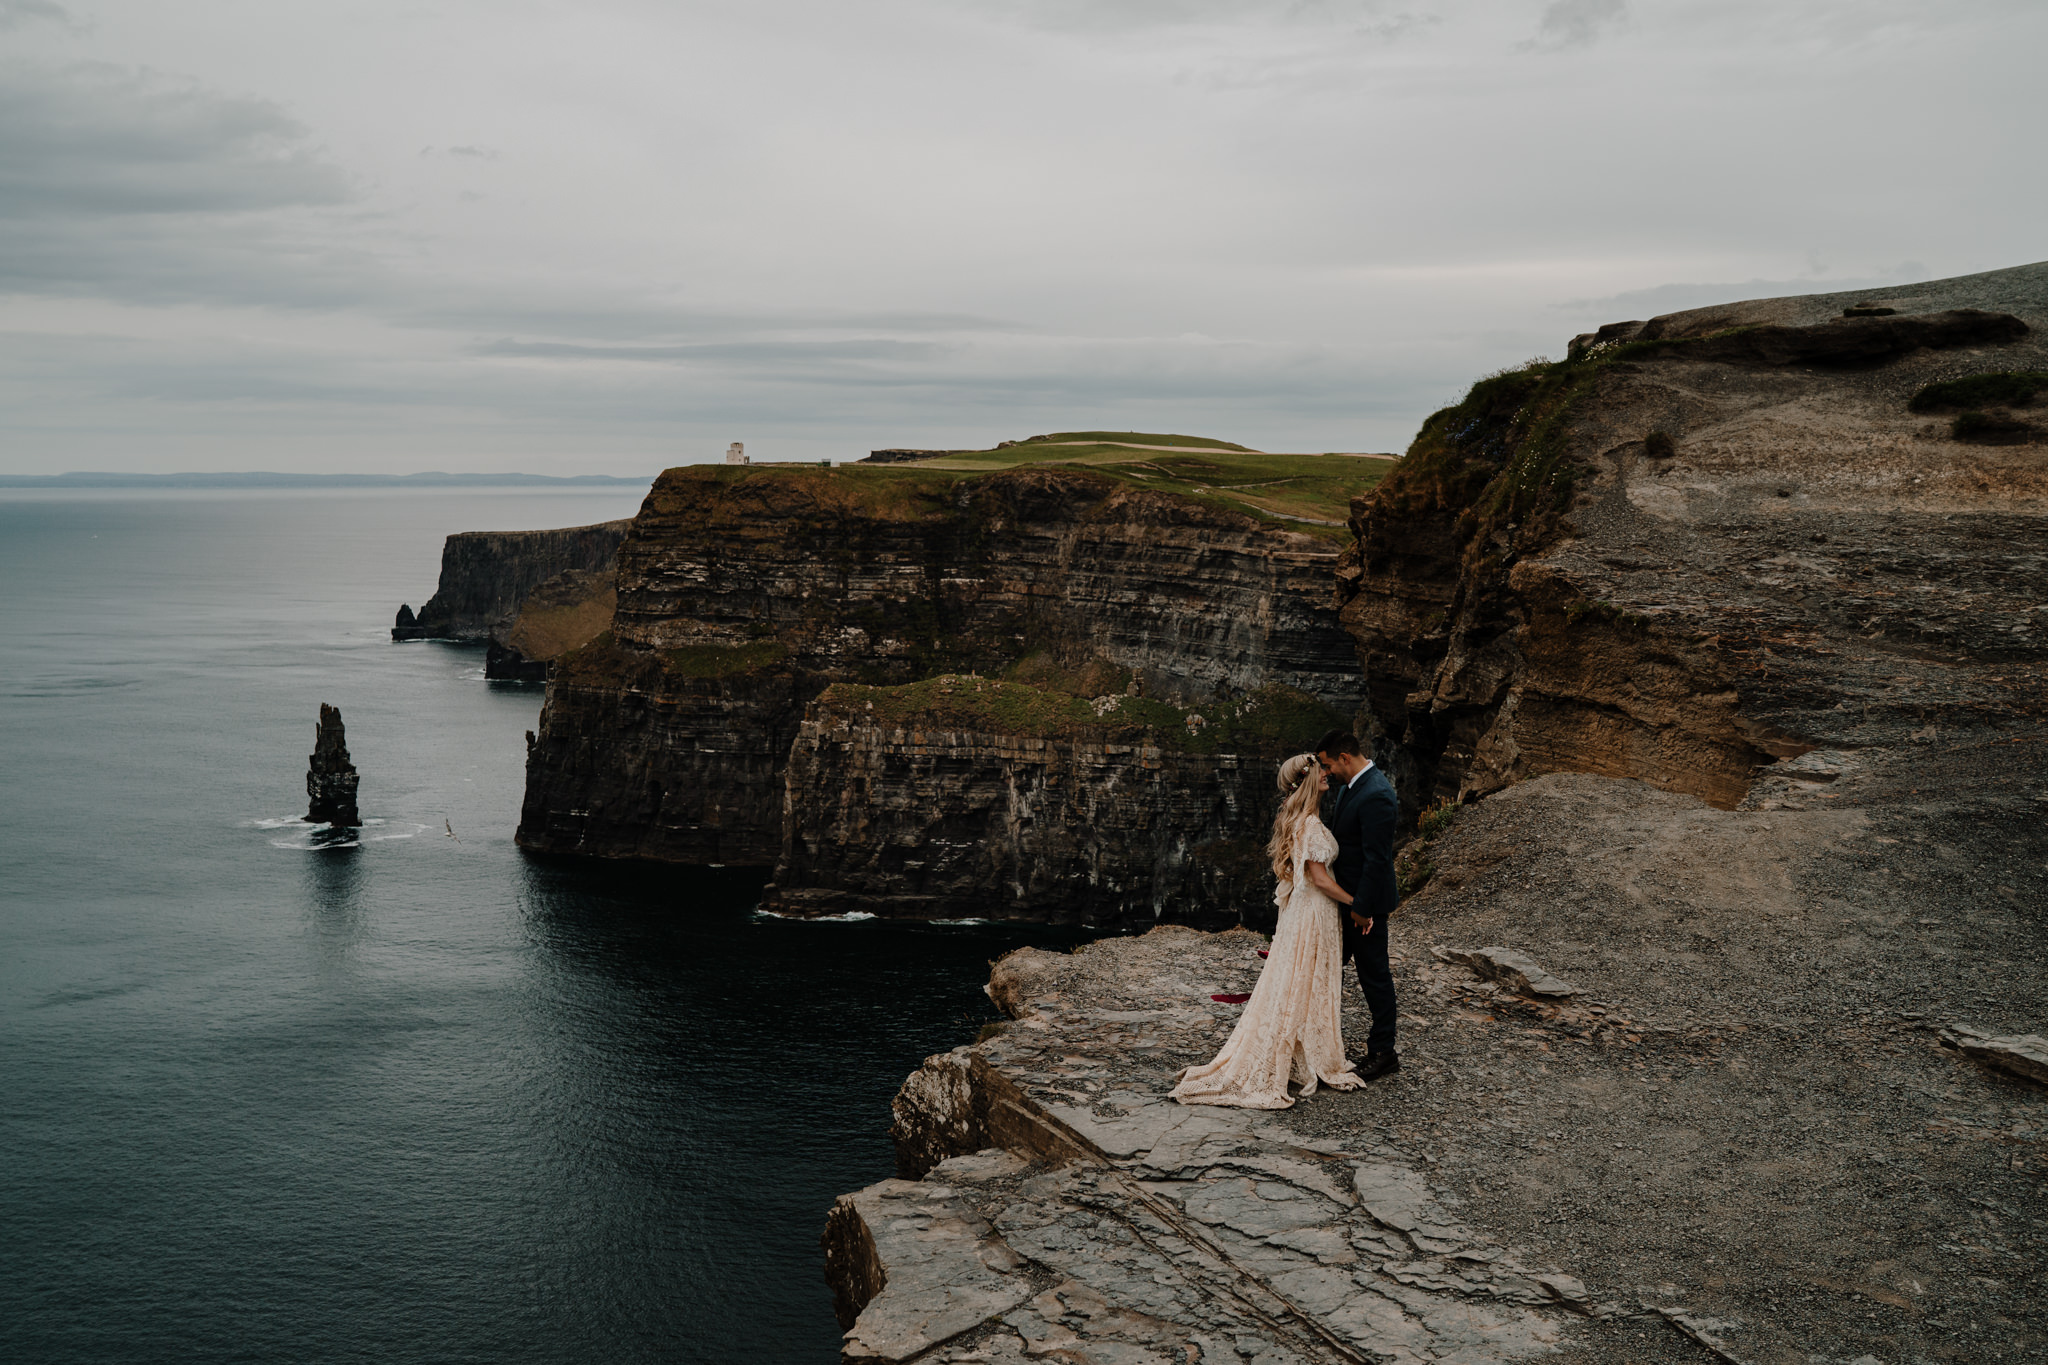 Cliffs of Moher elopement location cliff edge boho couple